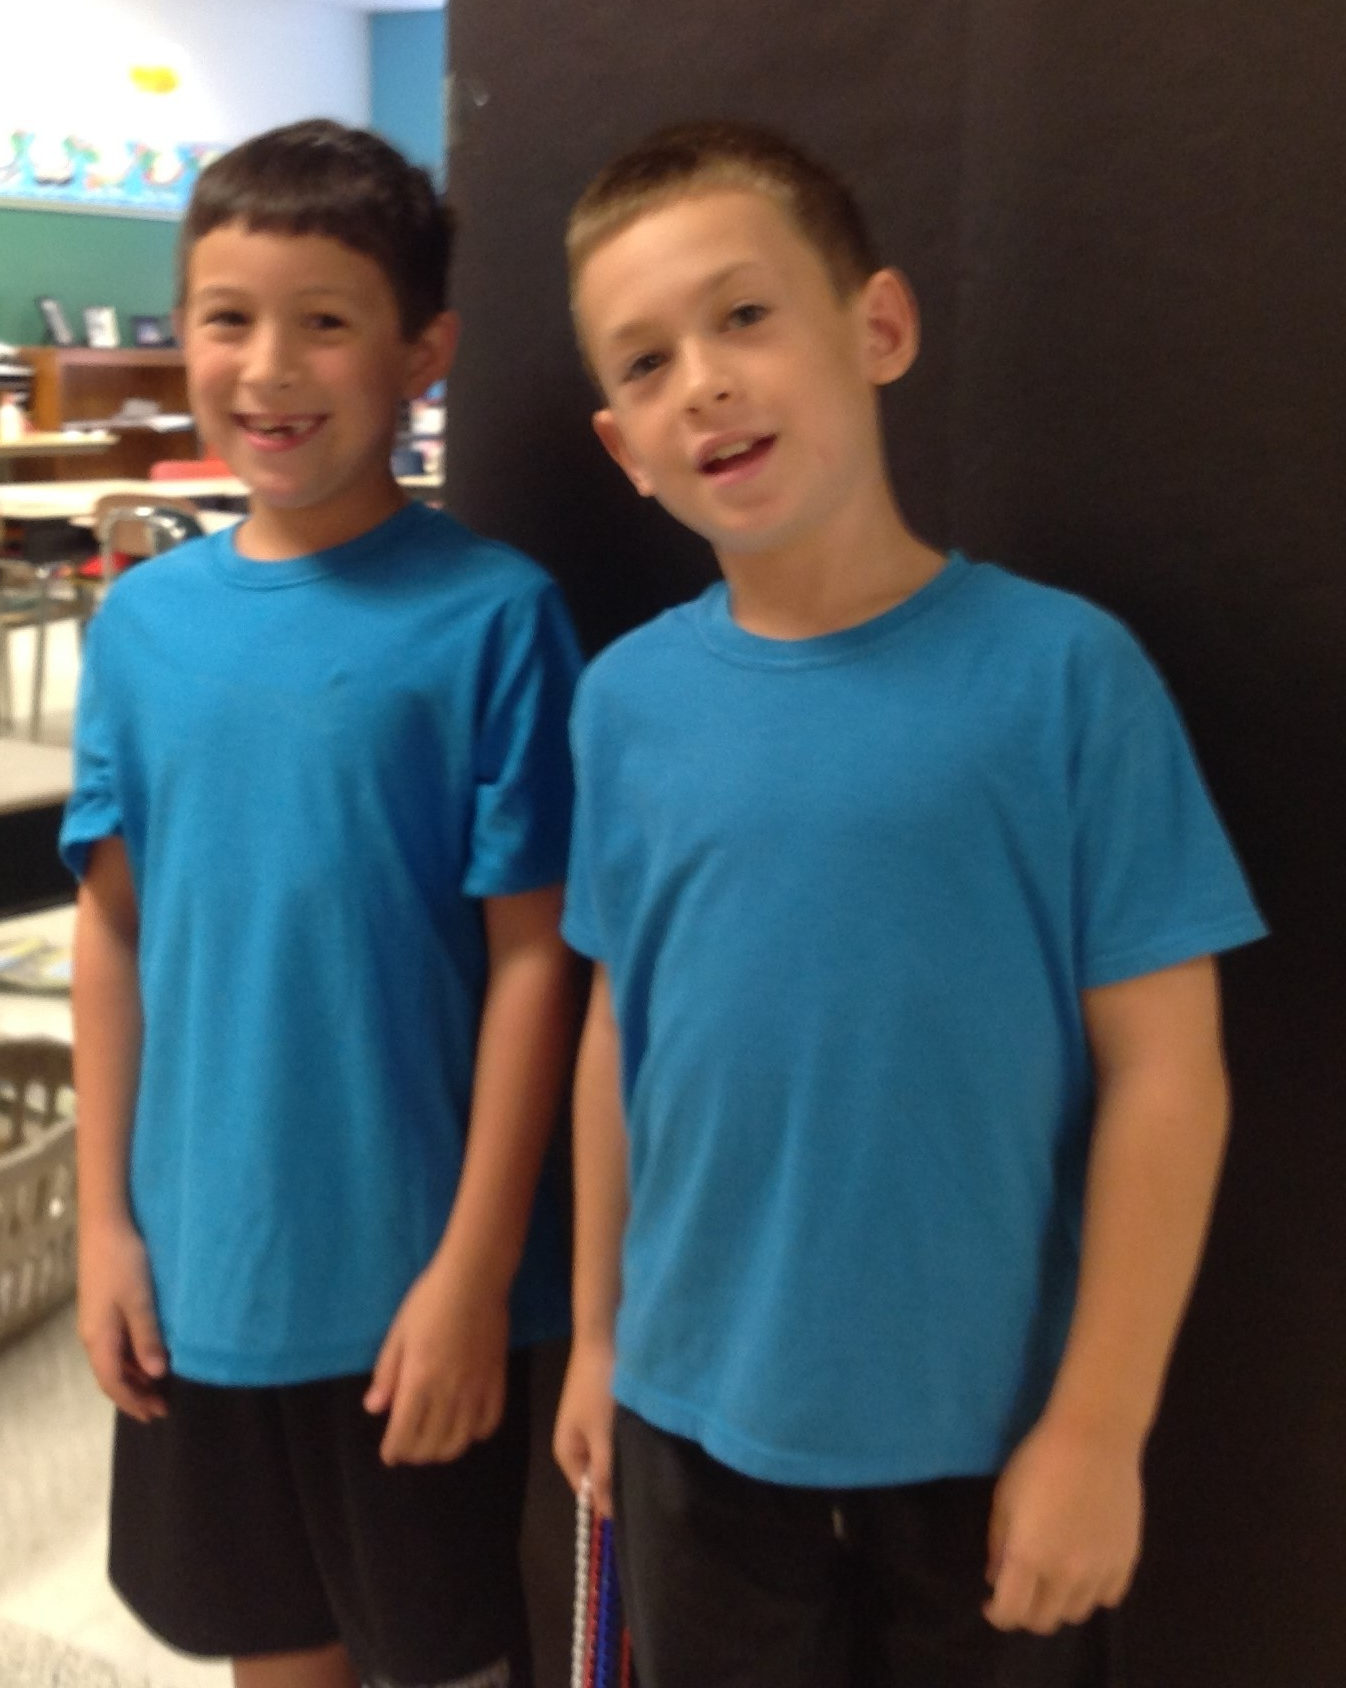 Dressing like twins day